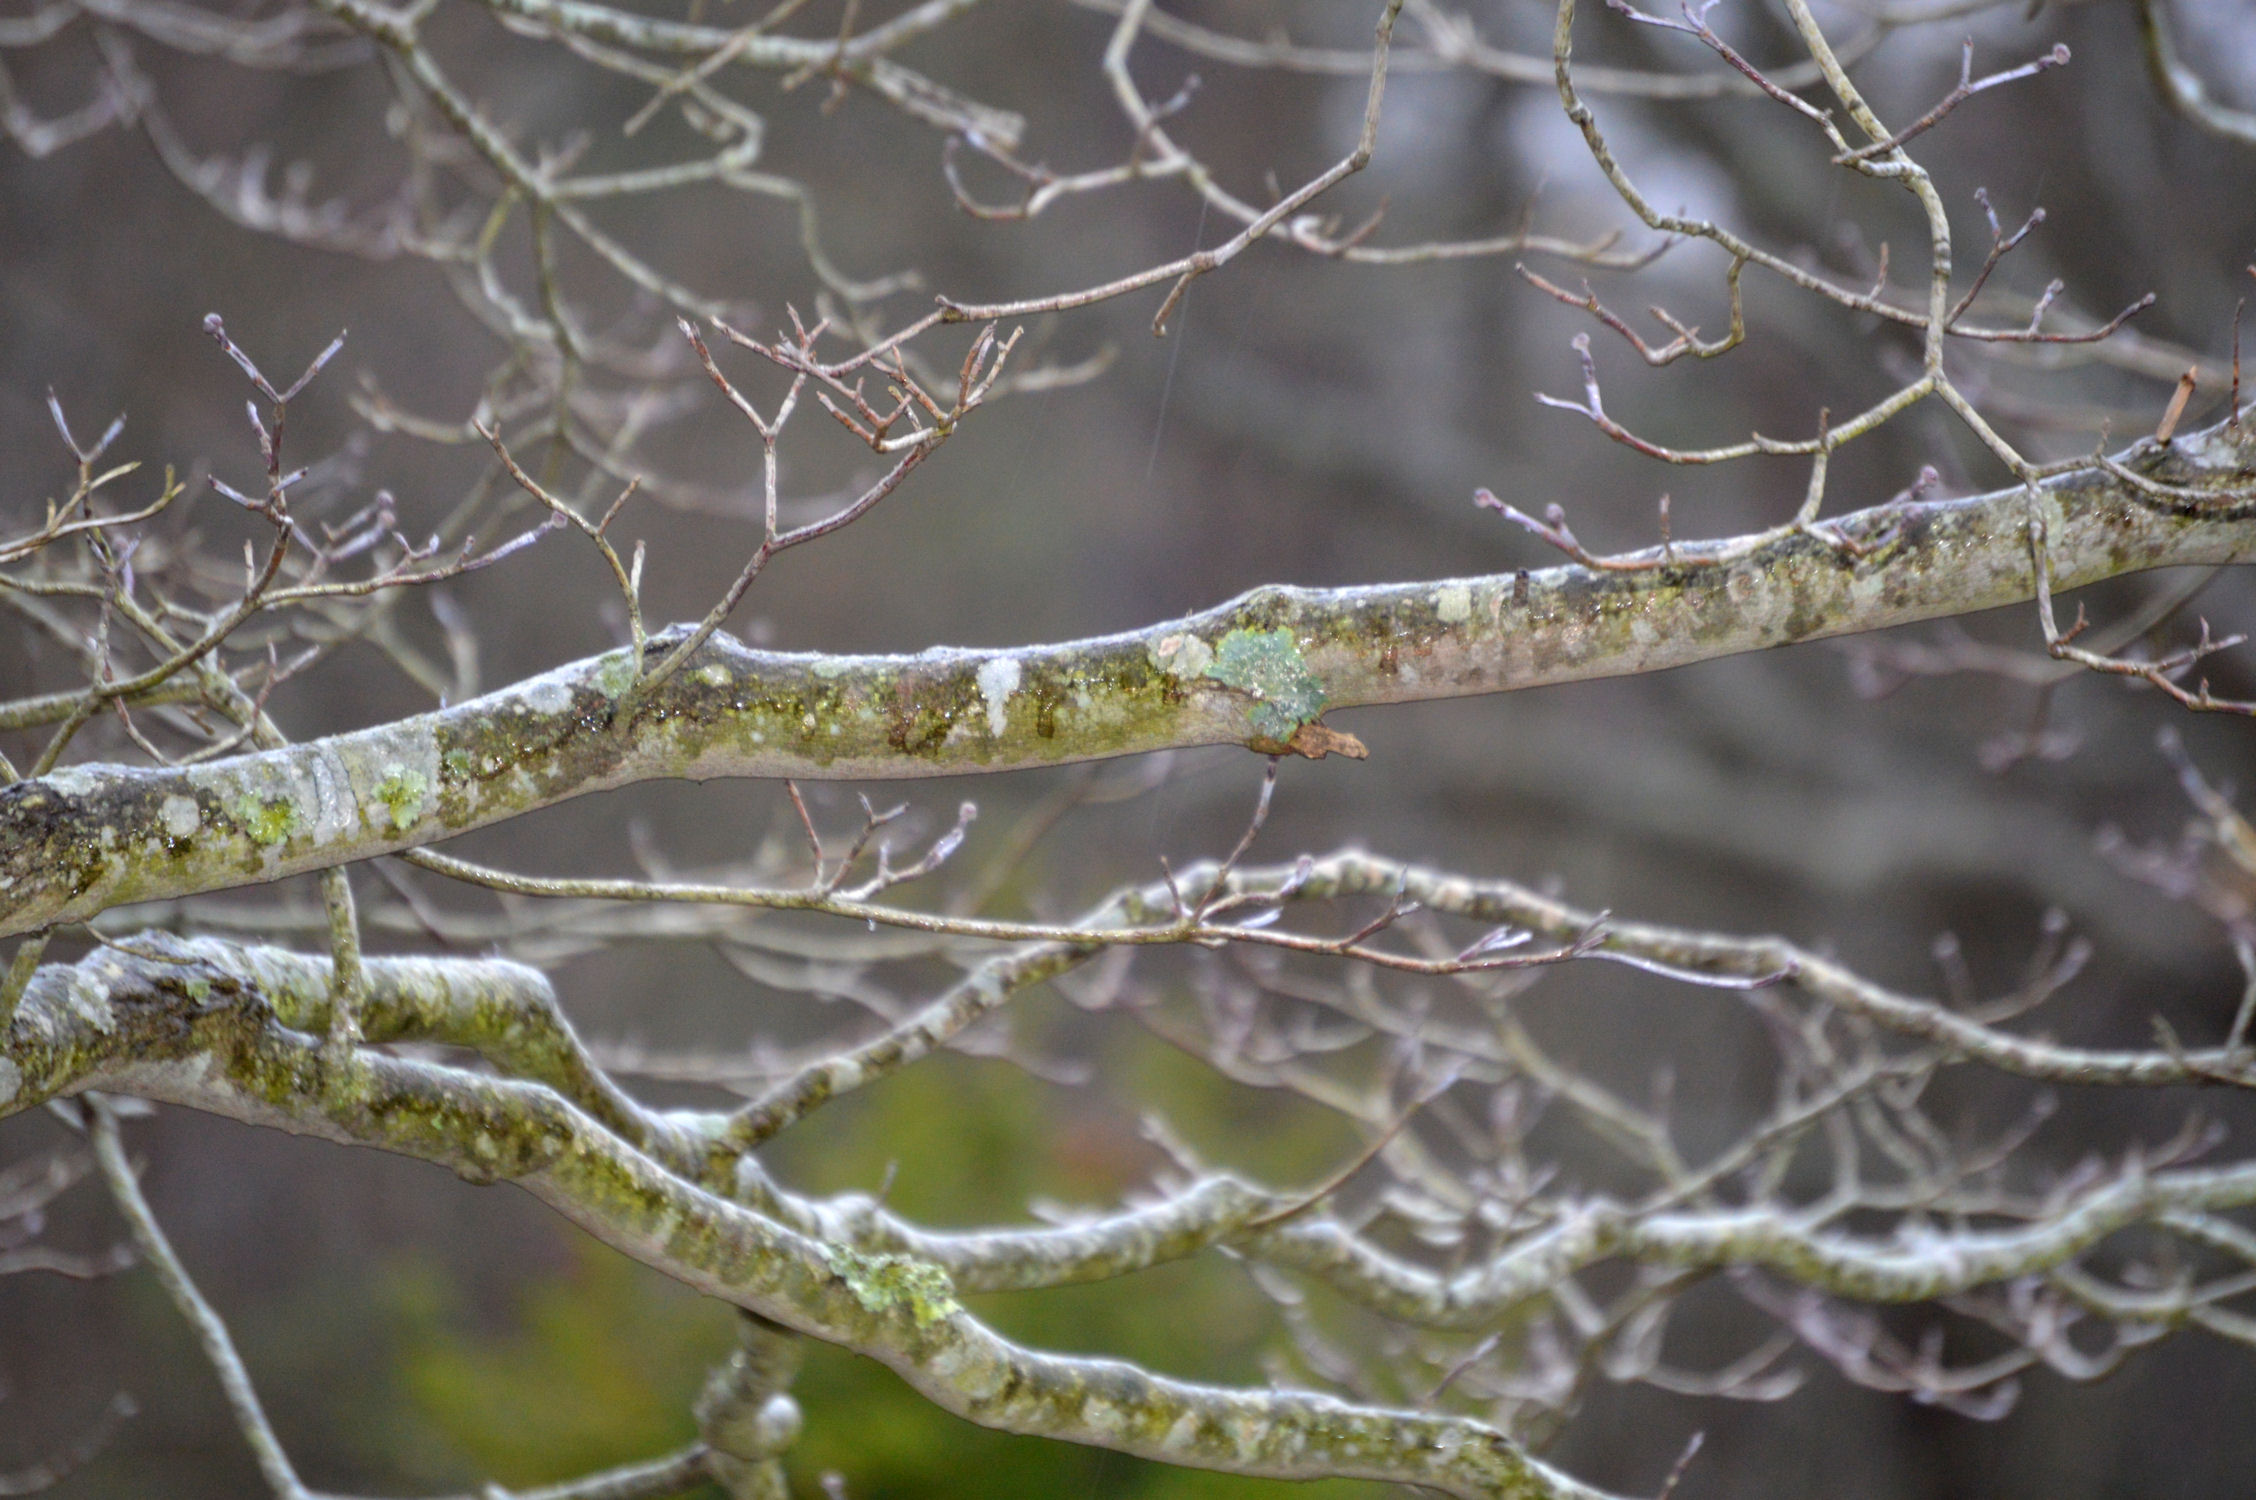 Moss on a branch